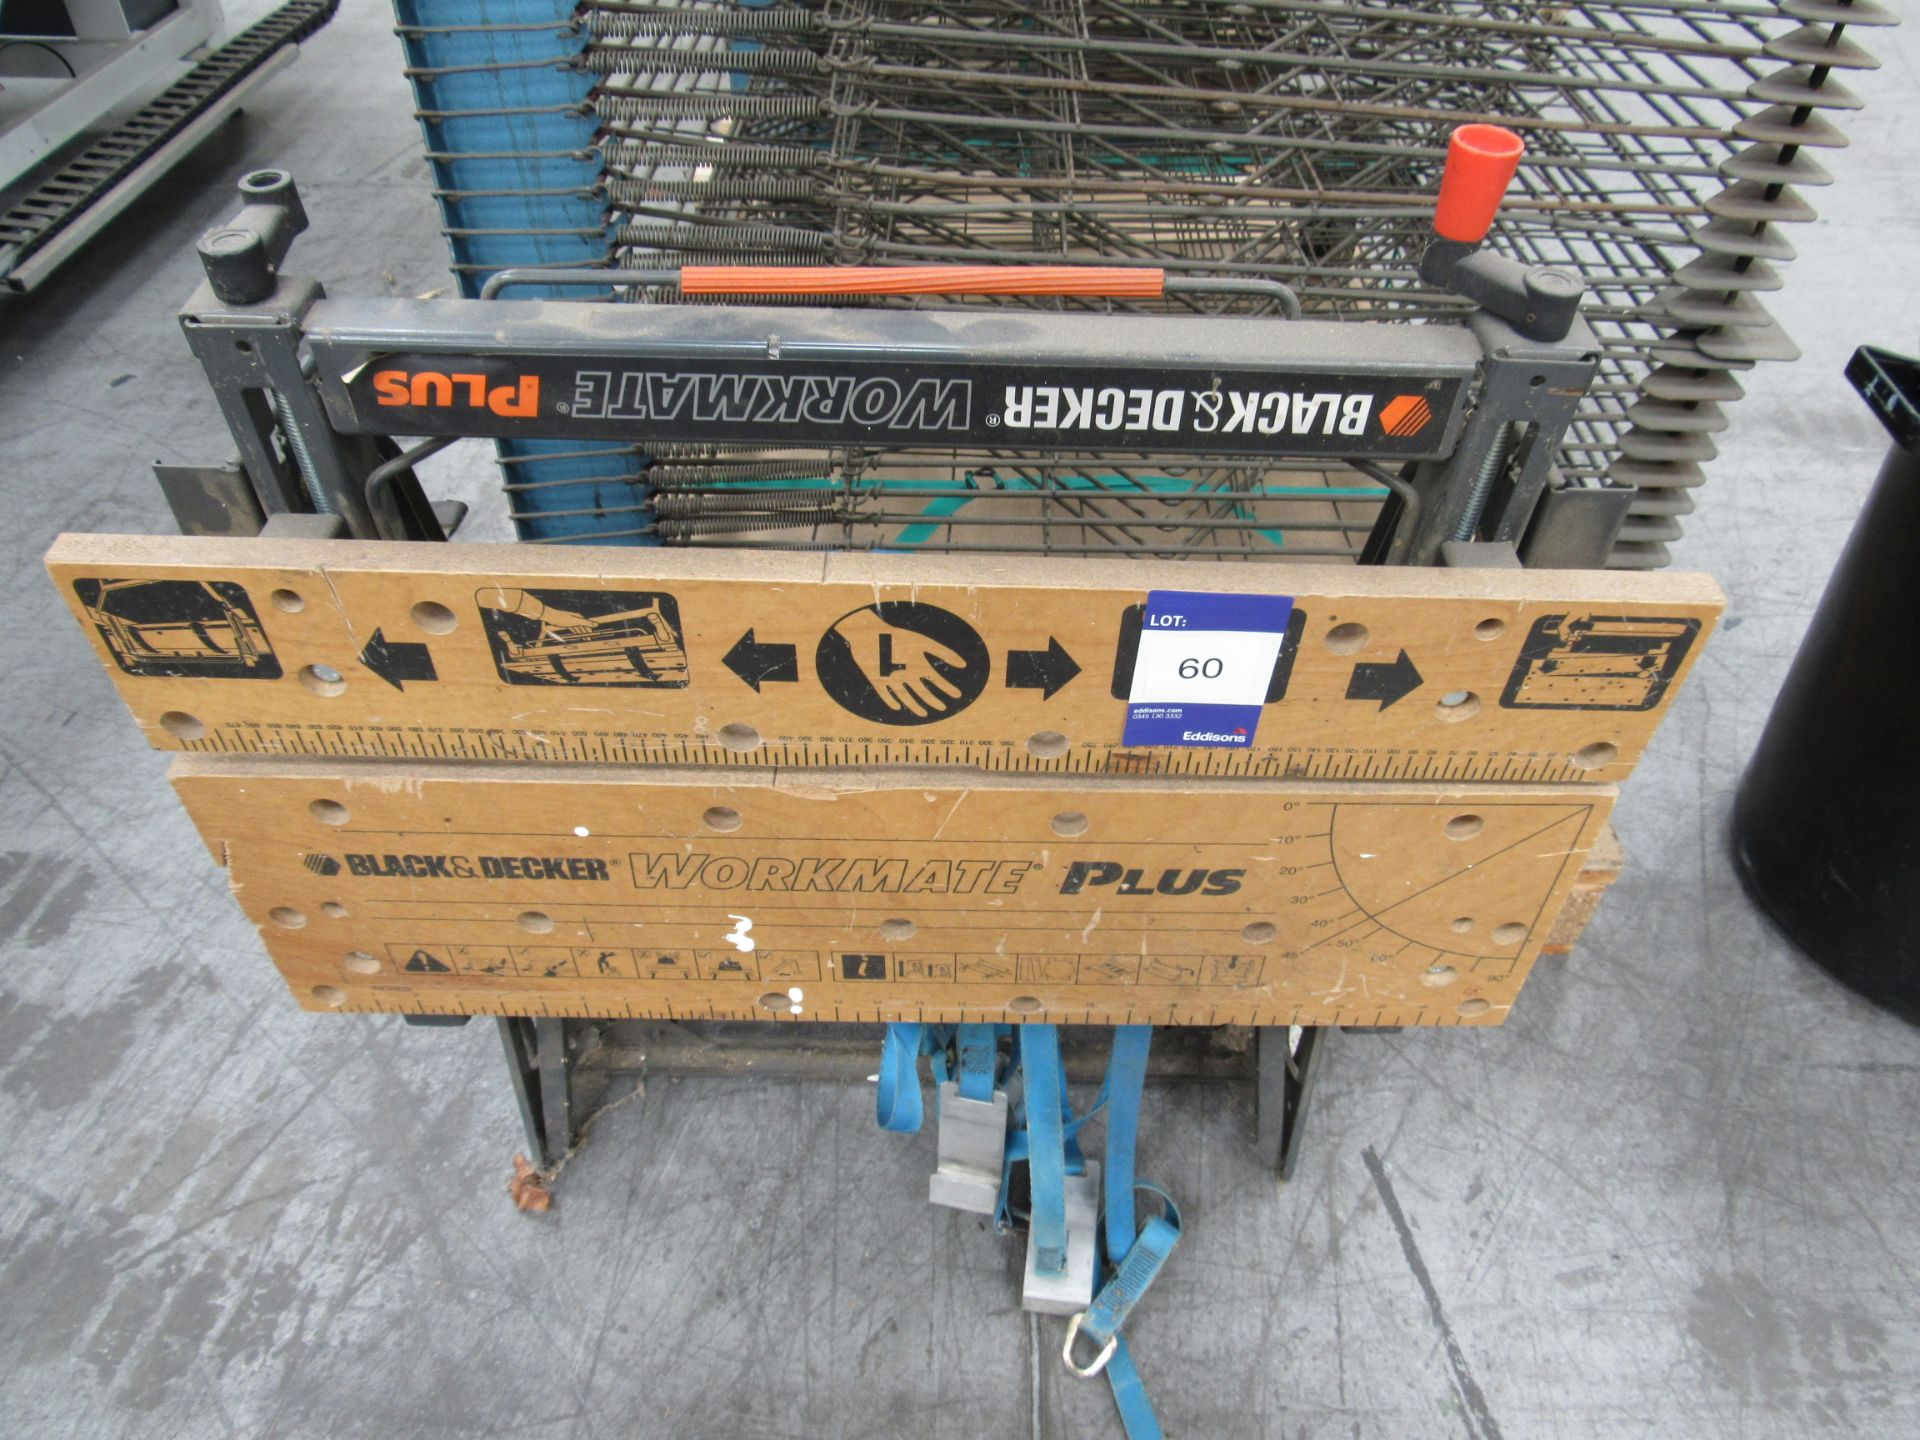 Black and Decker Workmate Plus Work Bench - Image 2 of 2